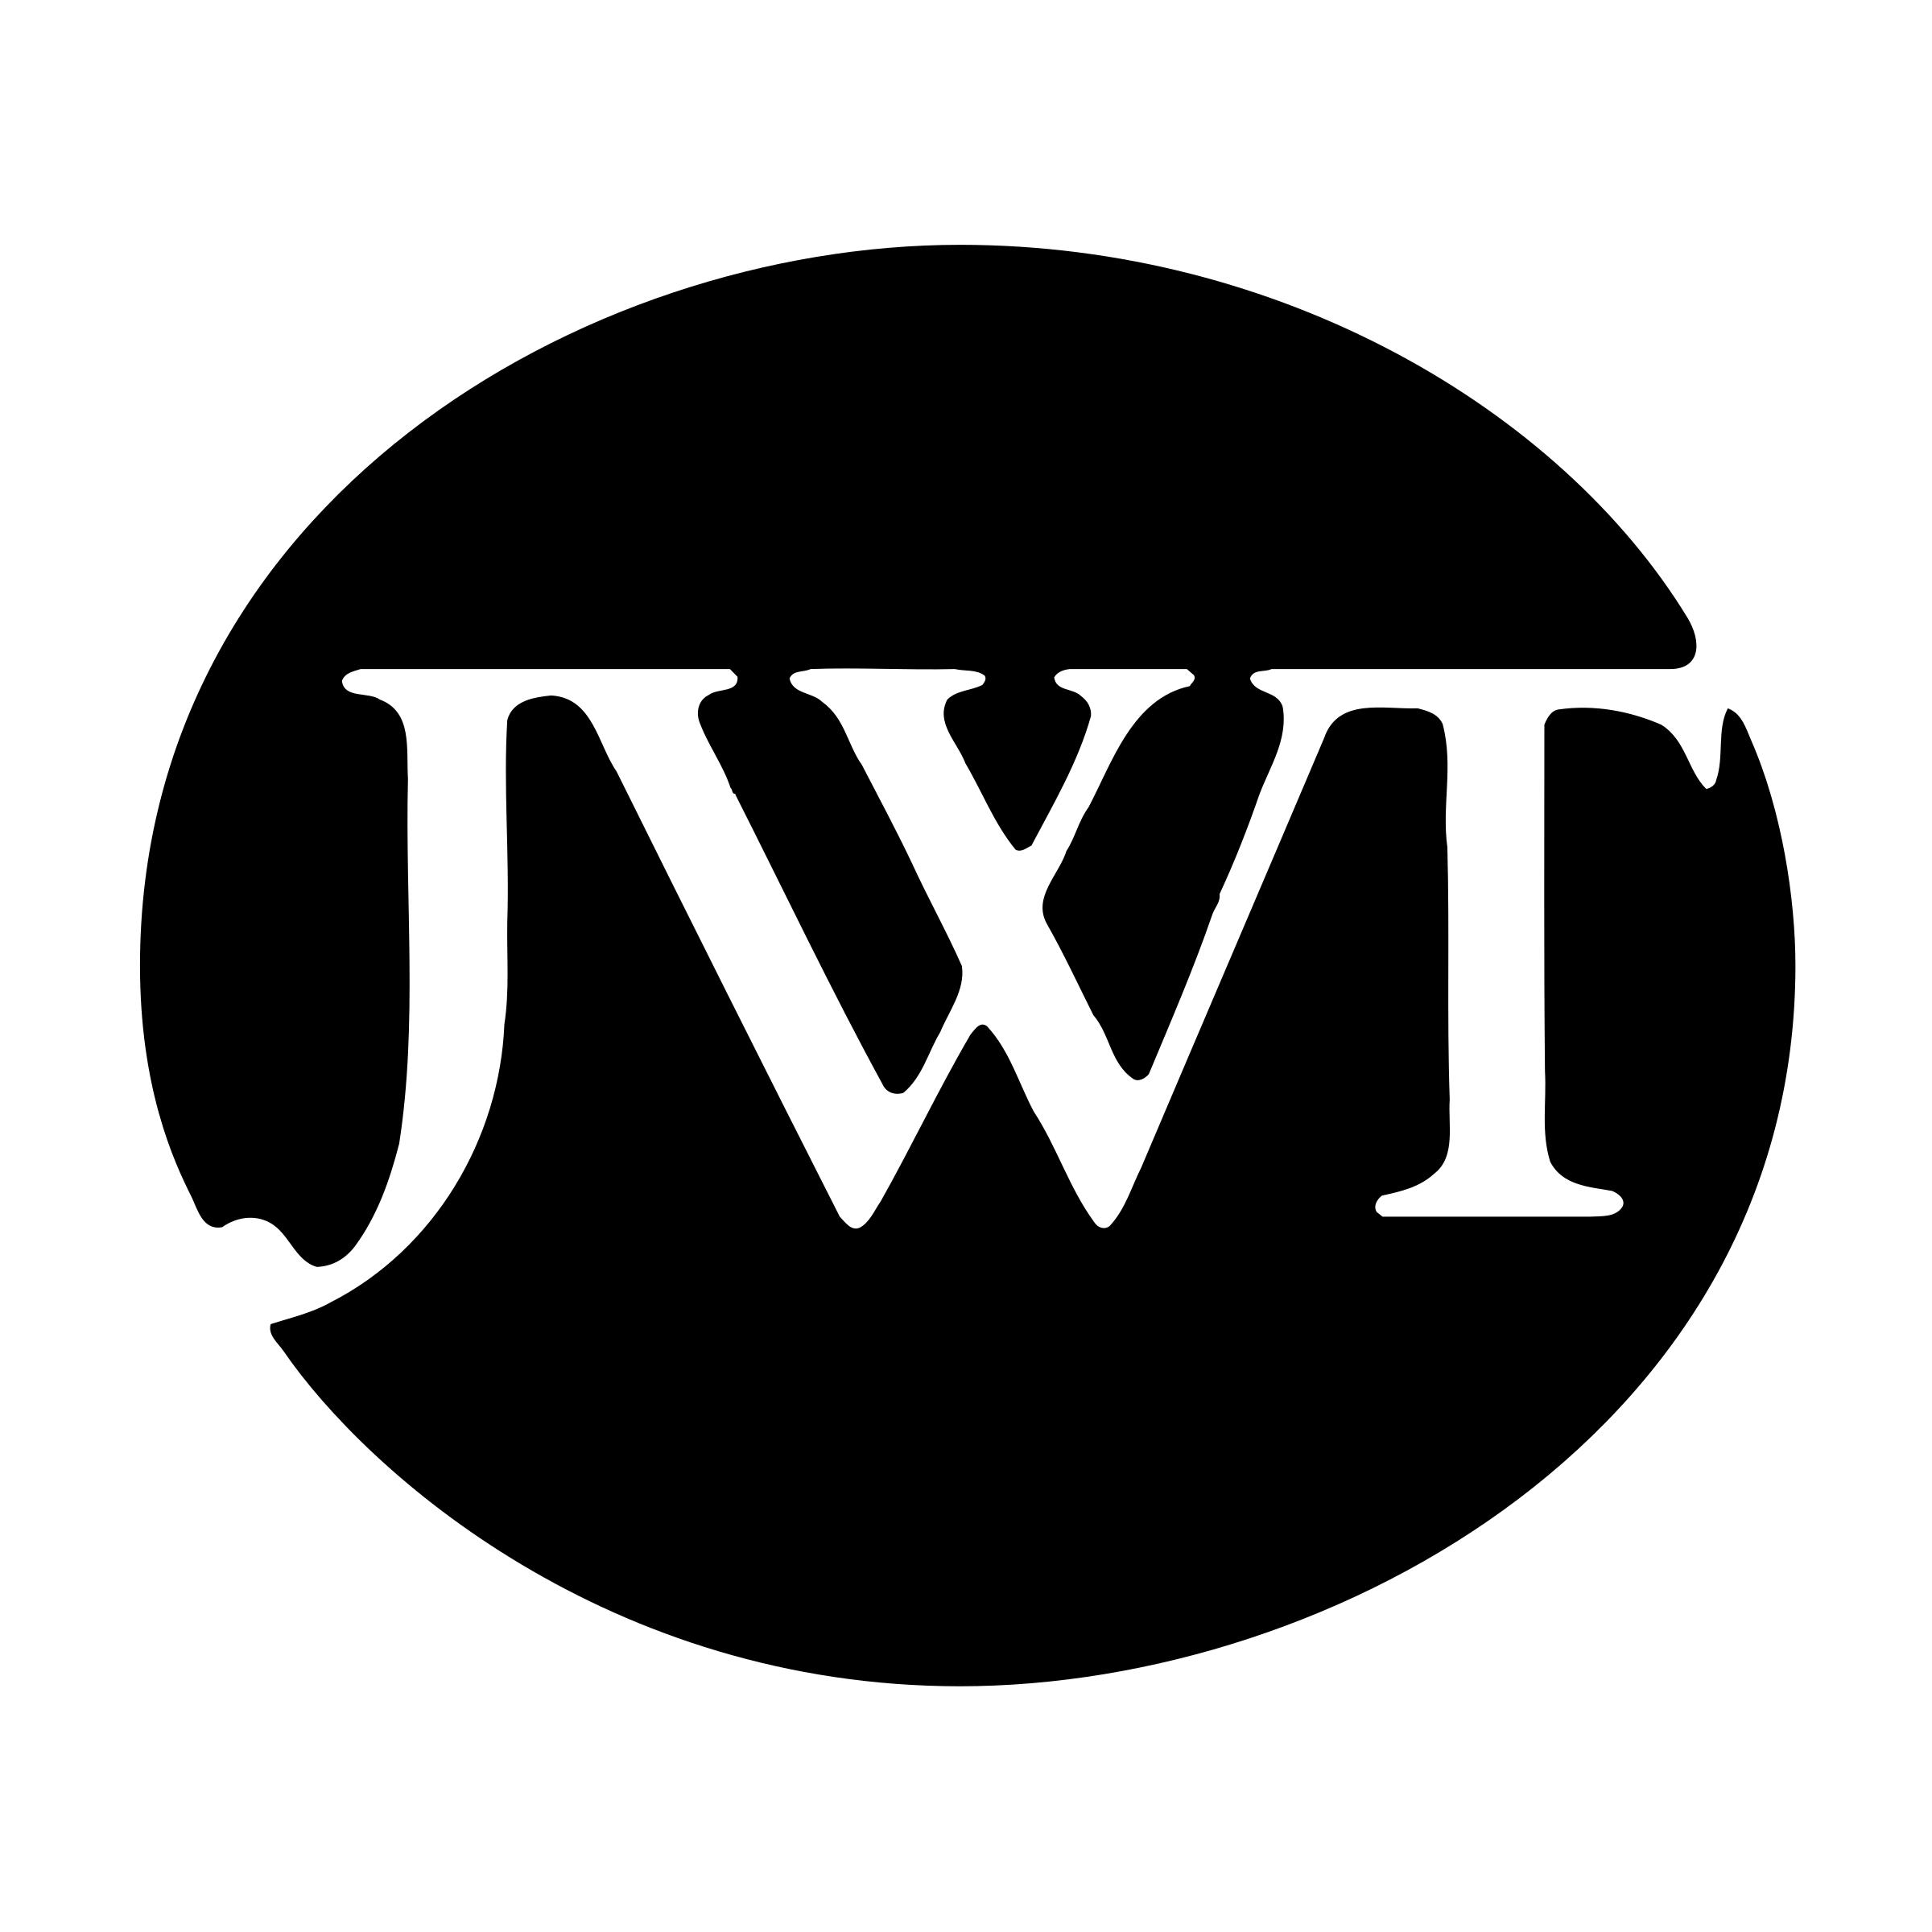 jwt-logo-png-transparent